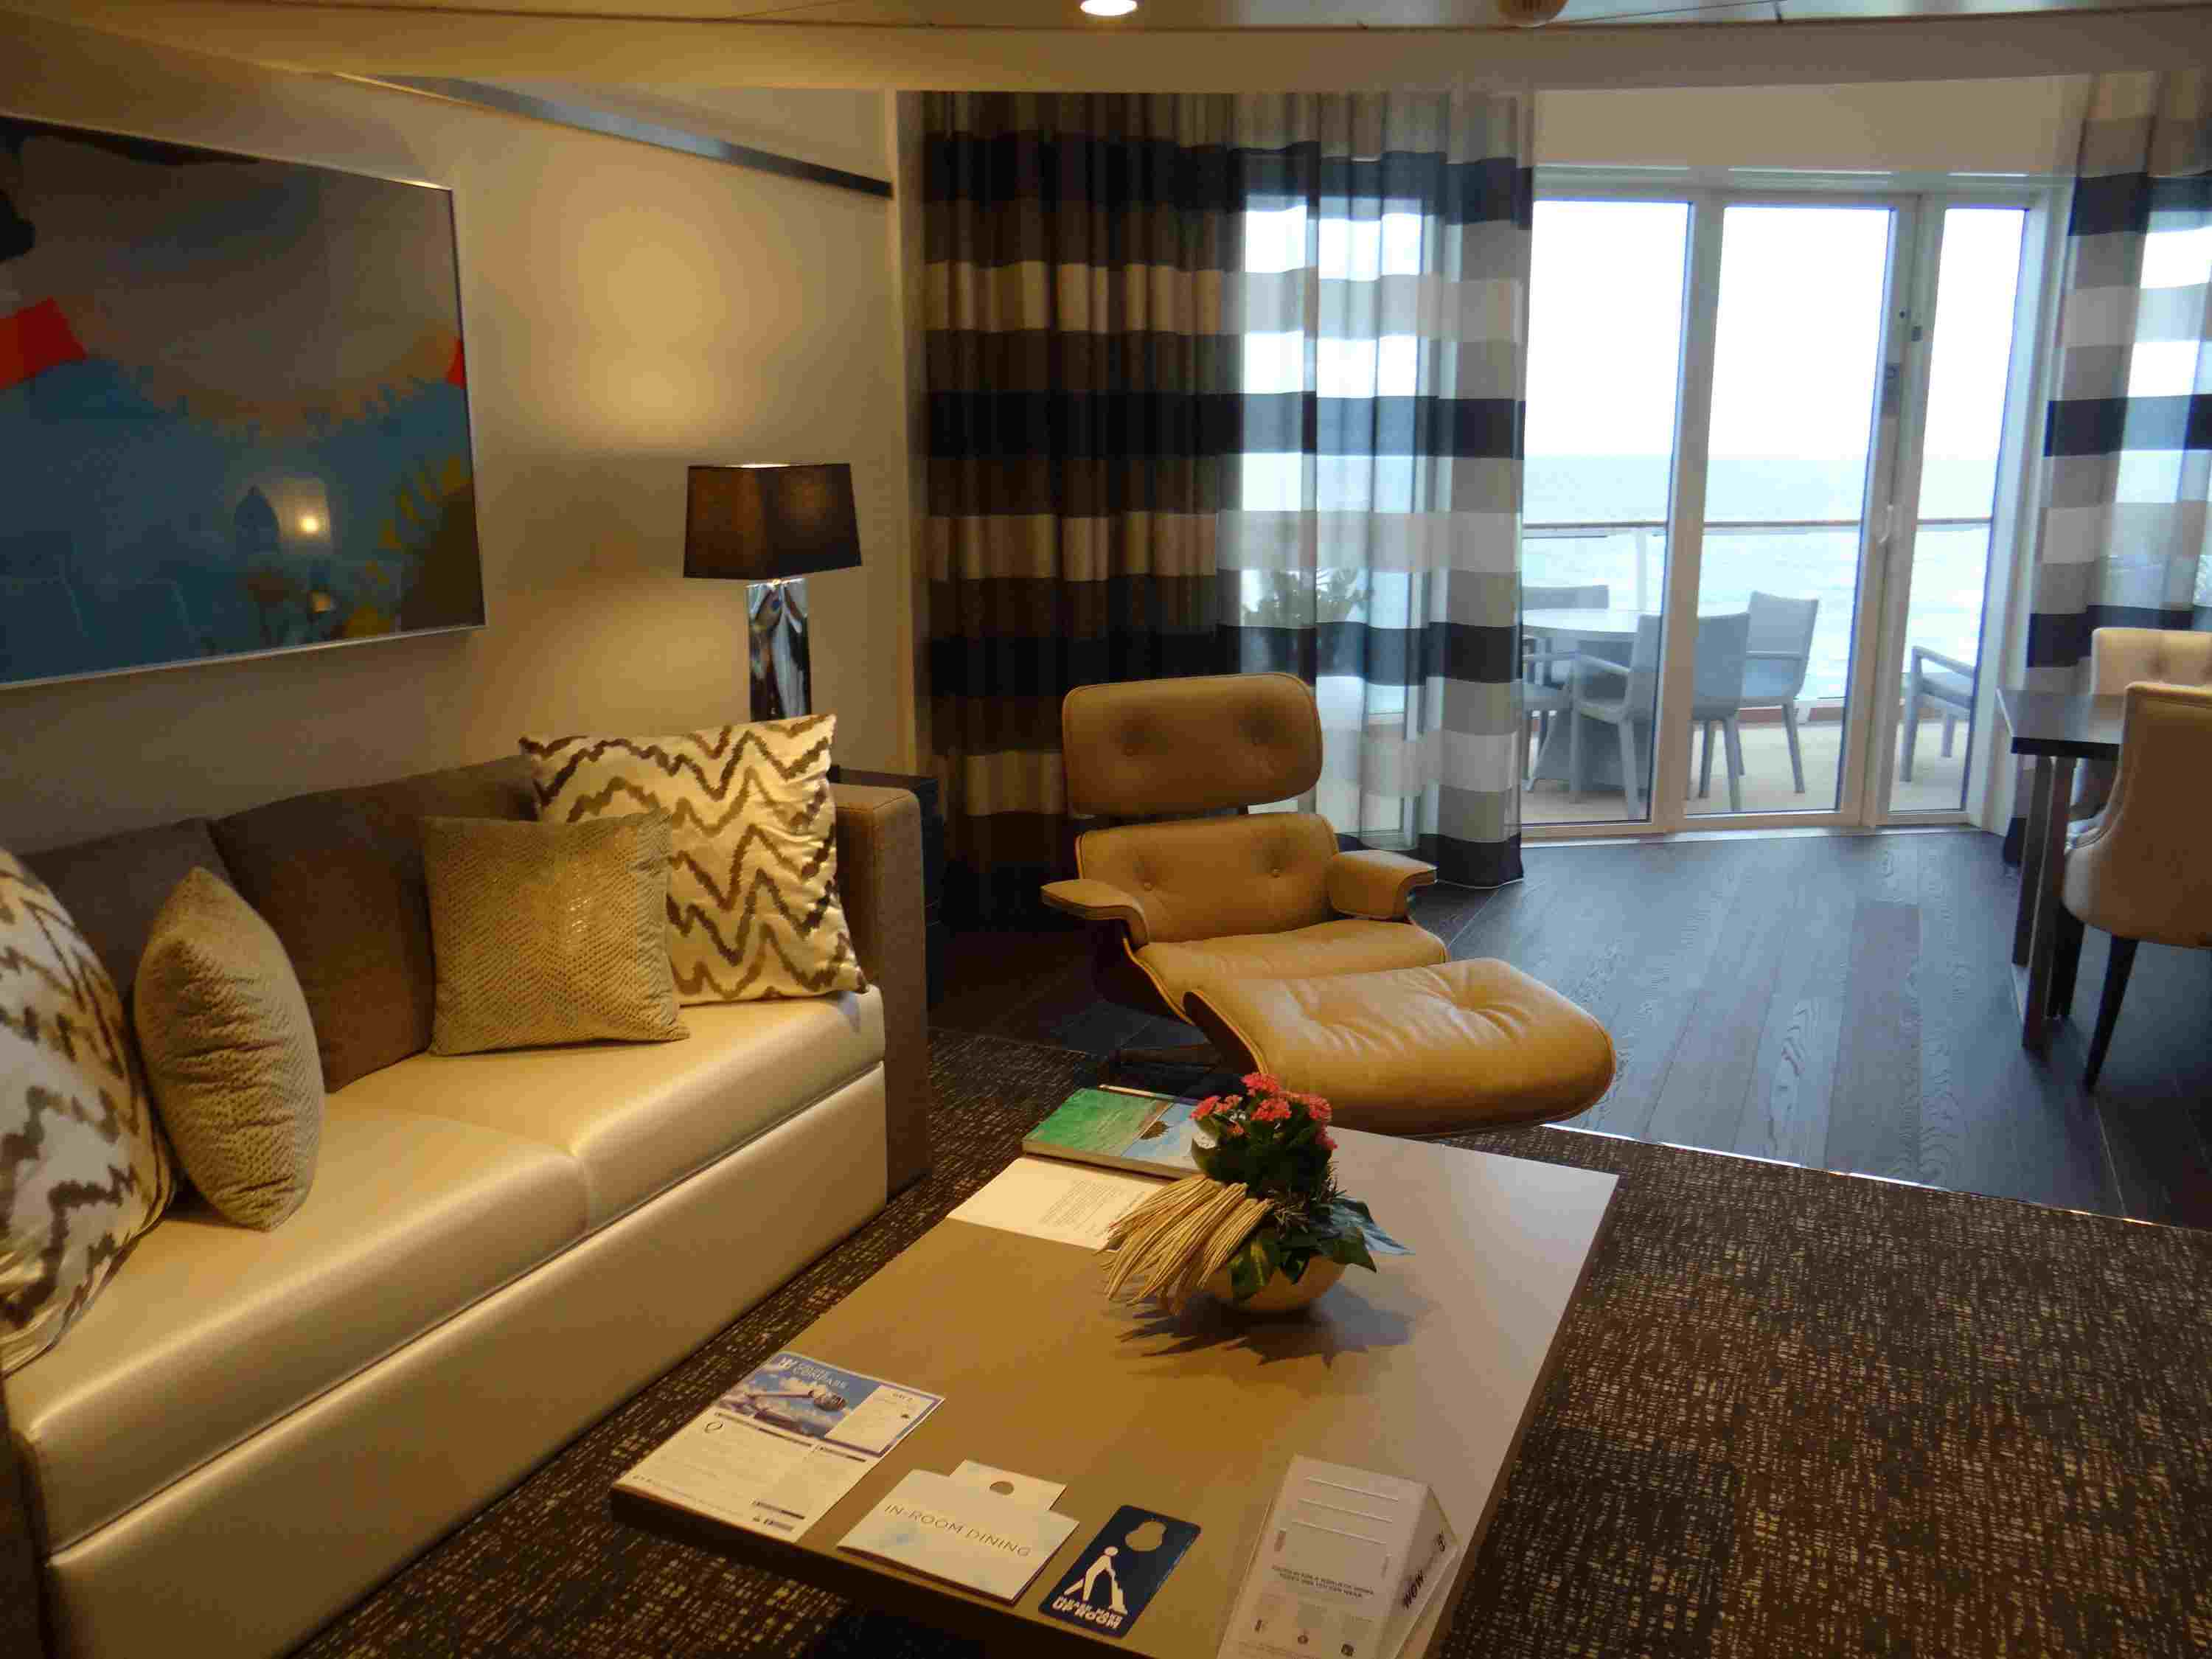 Quantum of the Seas Owner's Loft Suite with Balcony